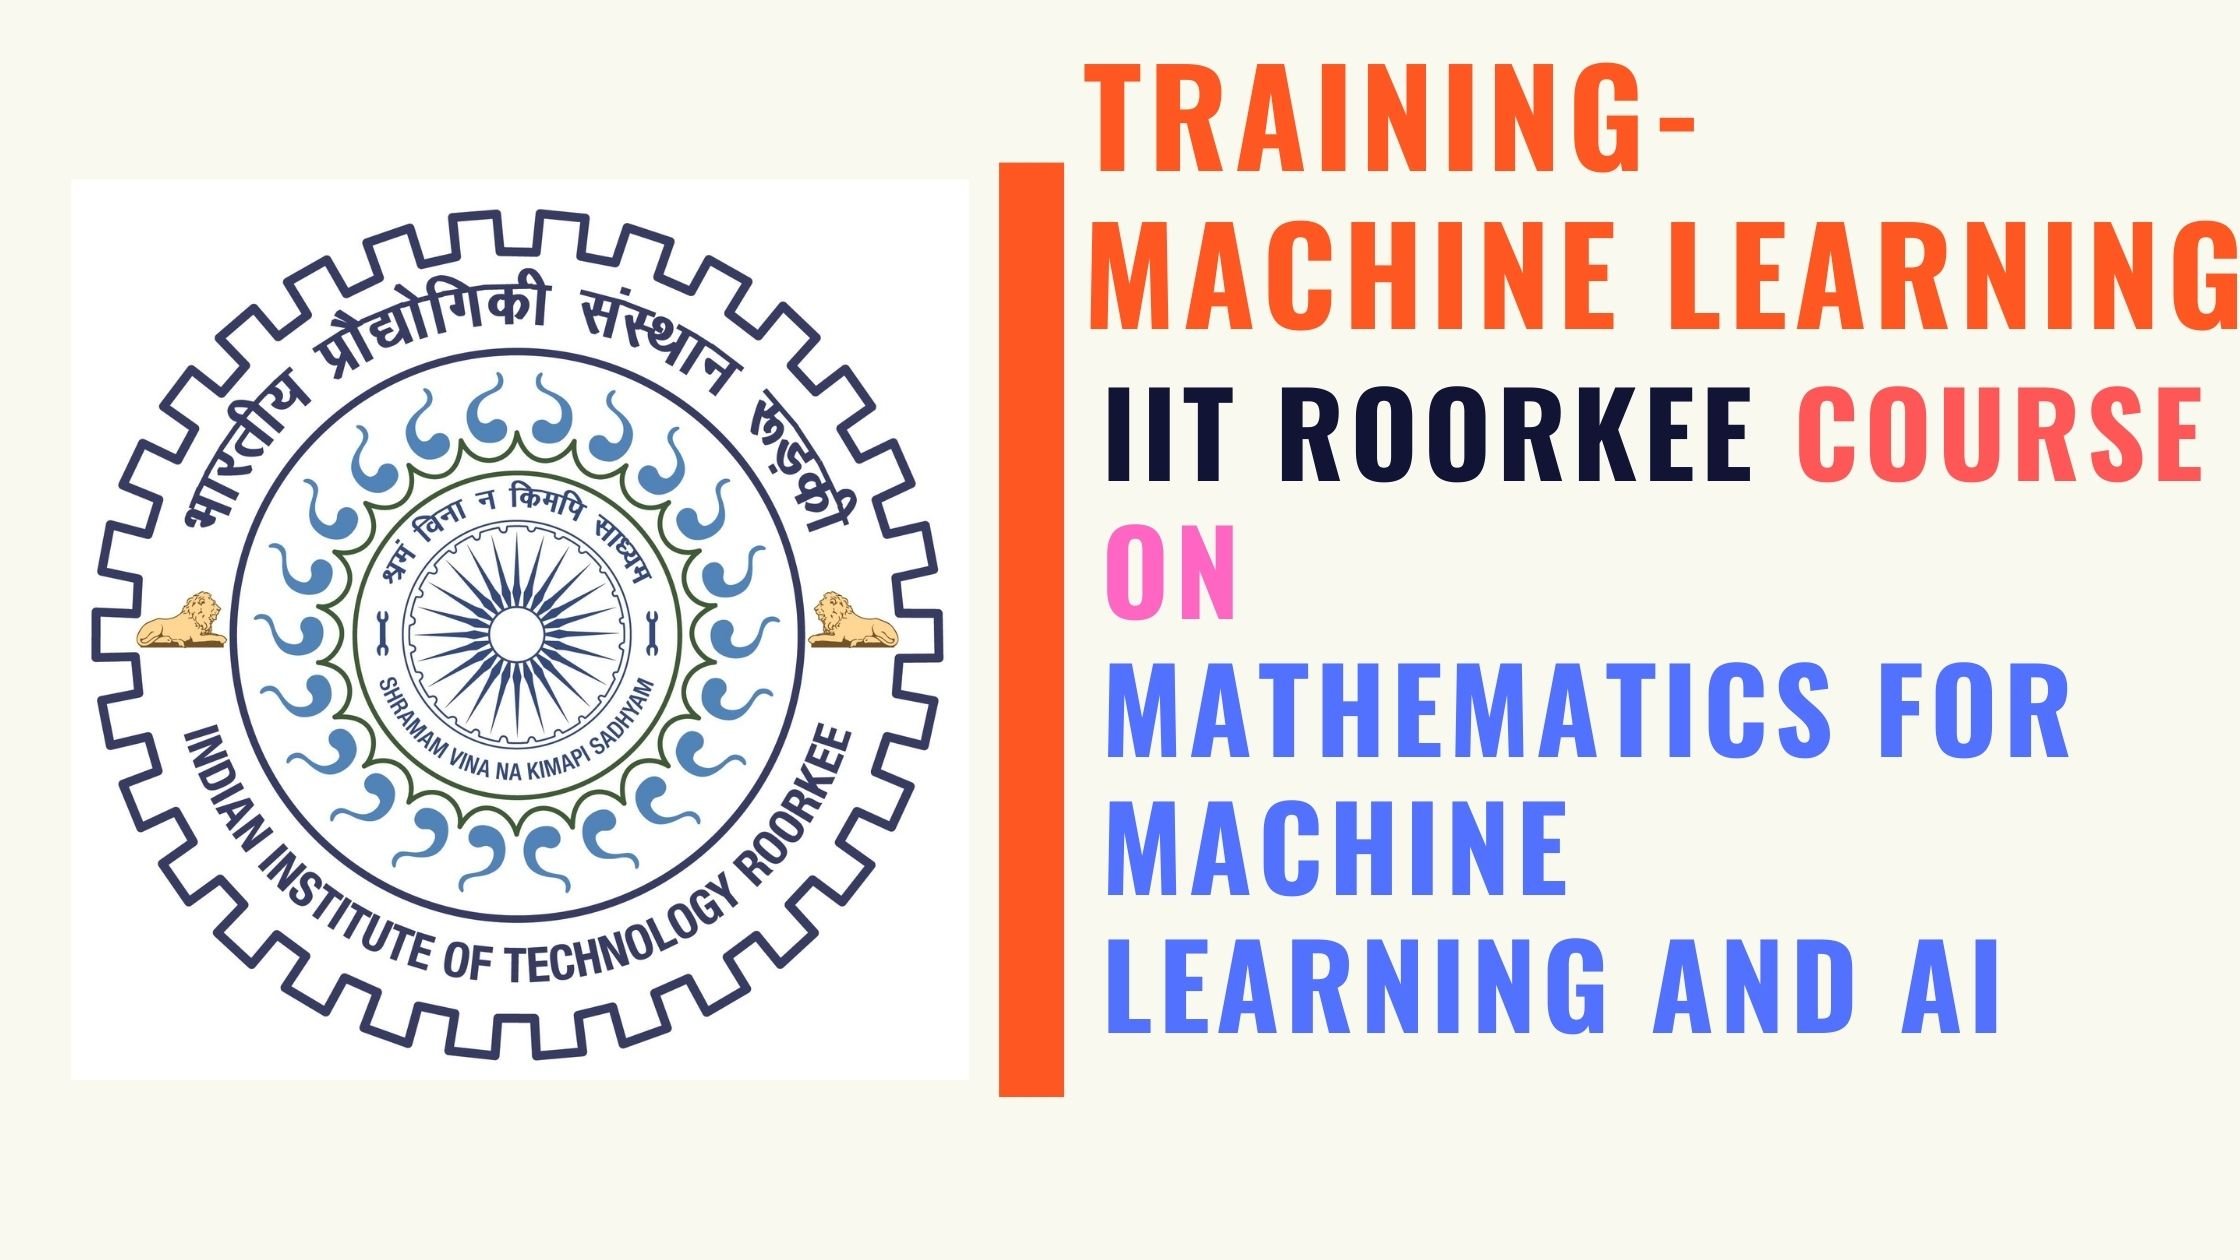 IIT Roorkee  Mathematics for Machine Learning and AI Training Programme online